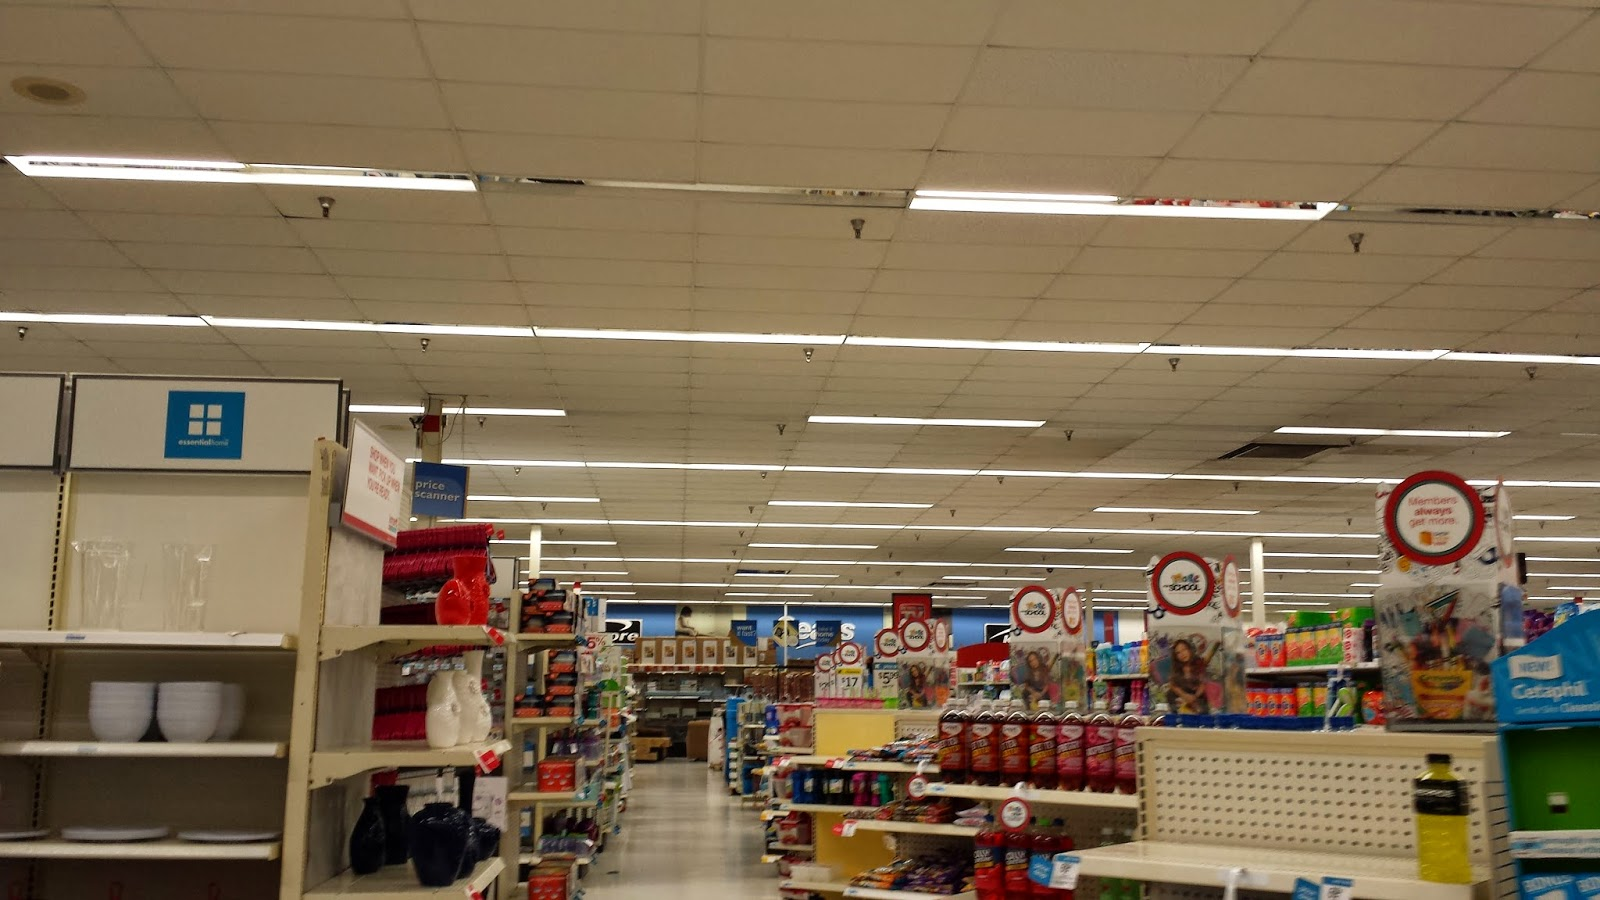 Louisiana And Texas Southern Malls And Retail Kmart 2940 Veterans Blvd Metairie La